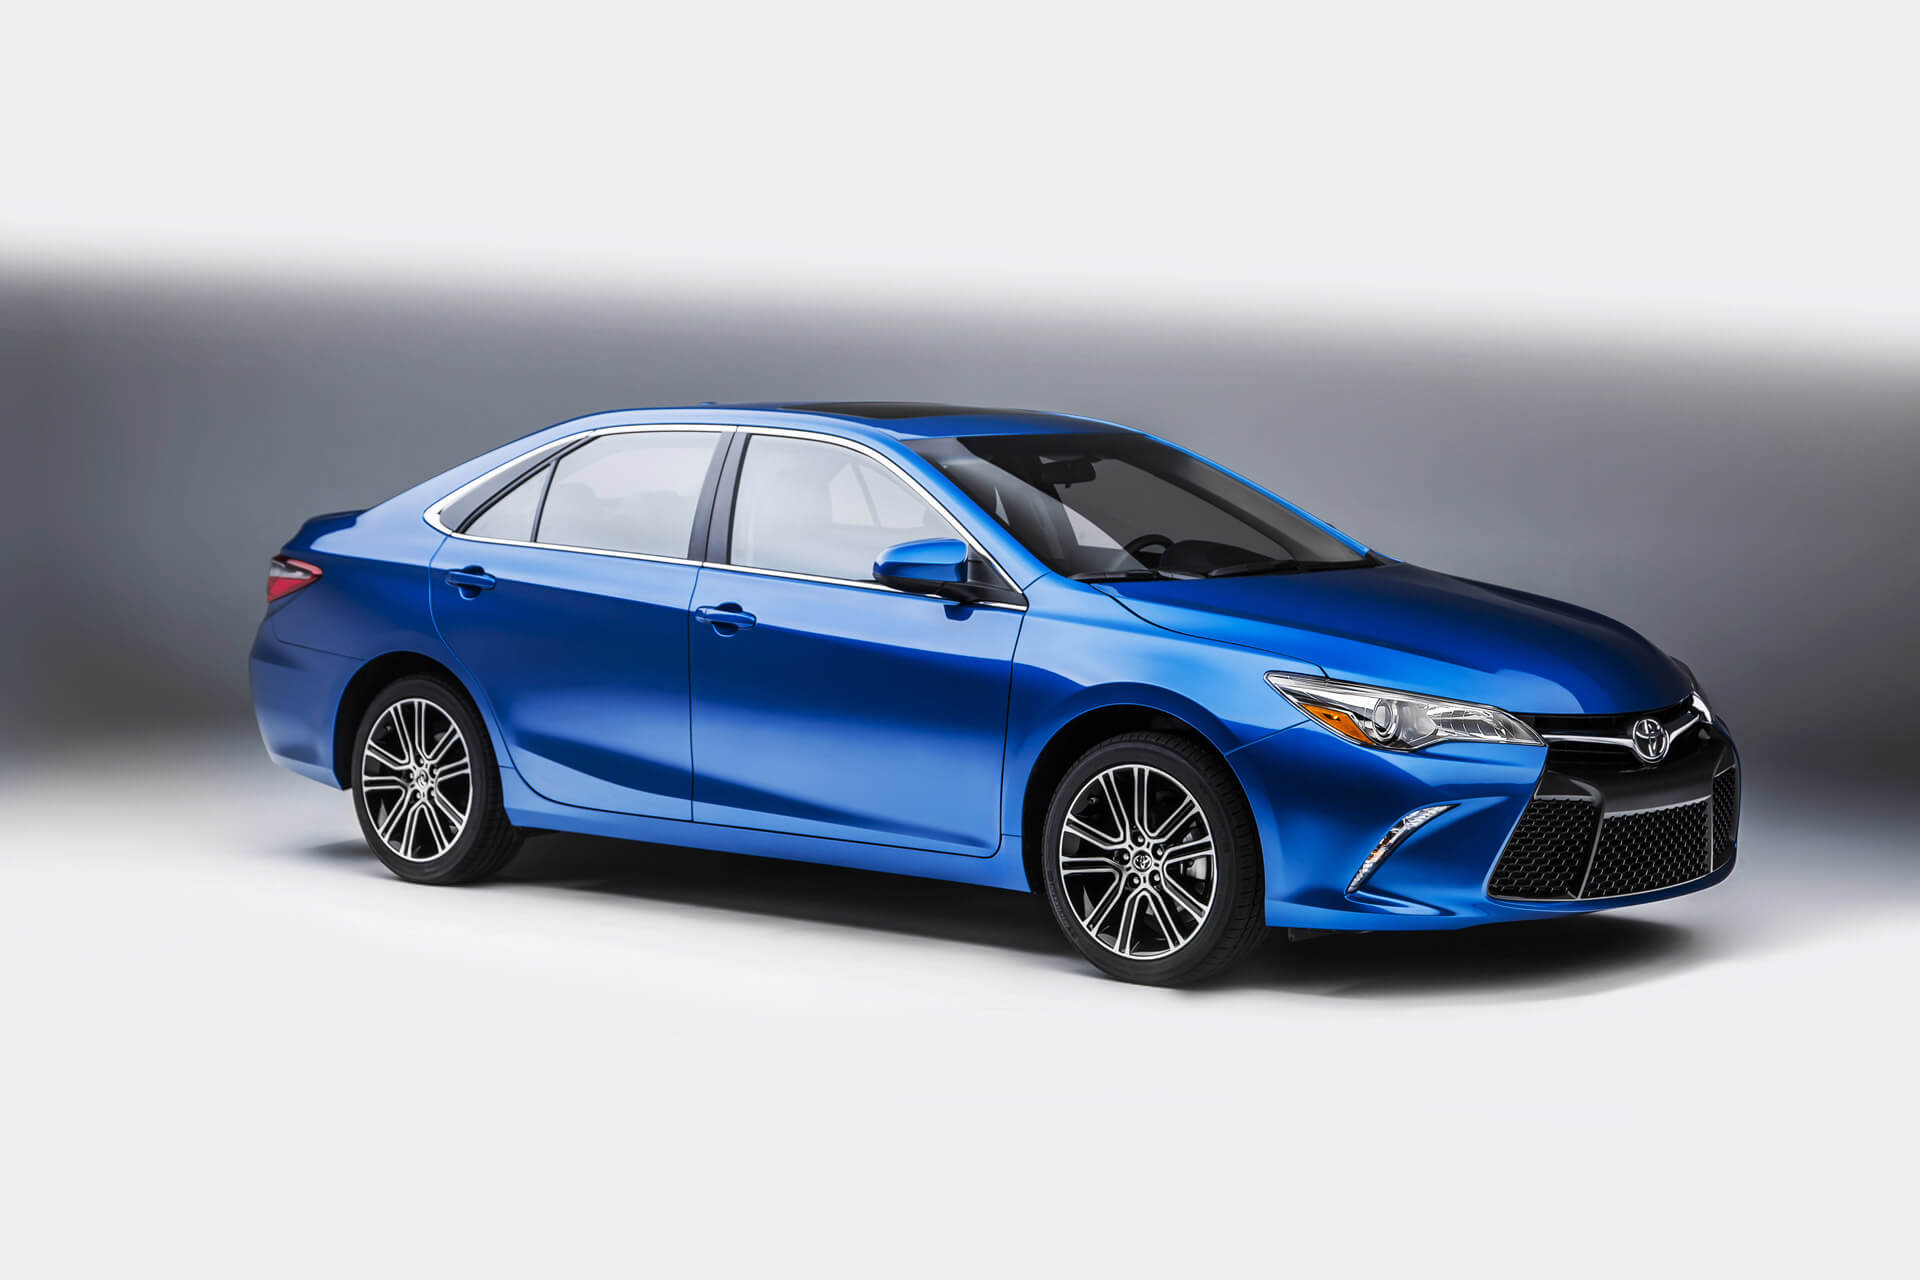 Toyota Camry Spider Car Price And Specs In Ghana